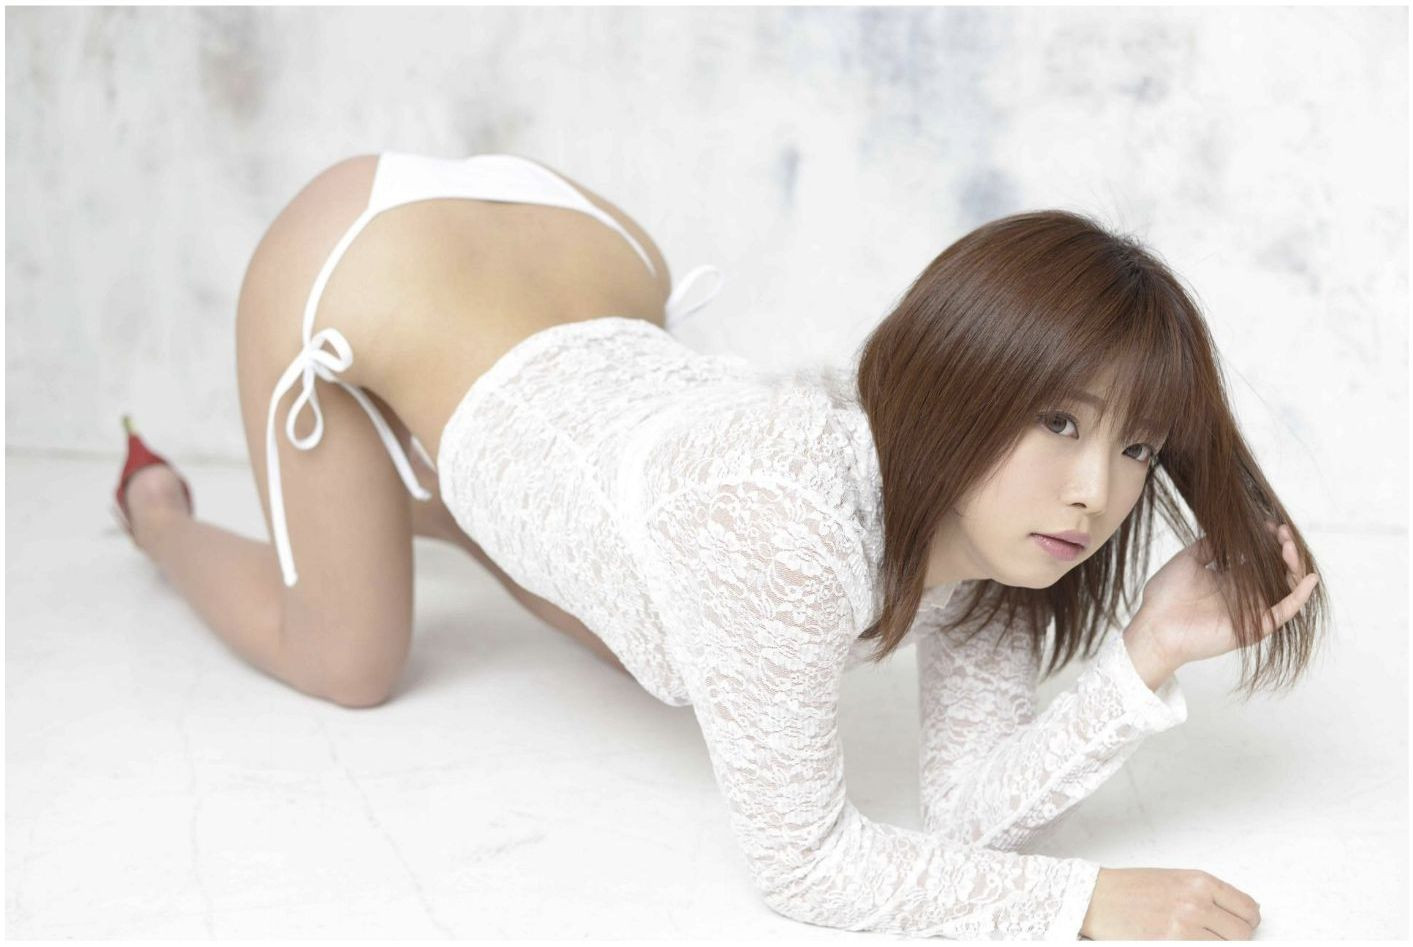 SOFT ON DEMAND GRAVURE COLLECTION 紗倉まな04 photo 036